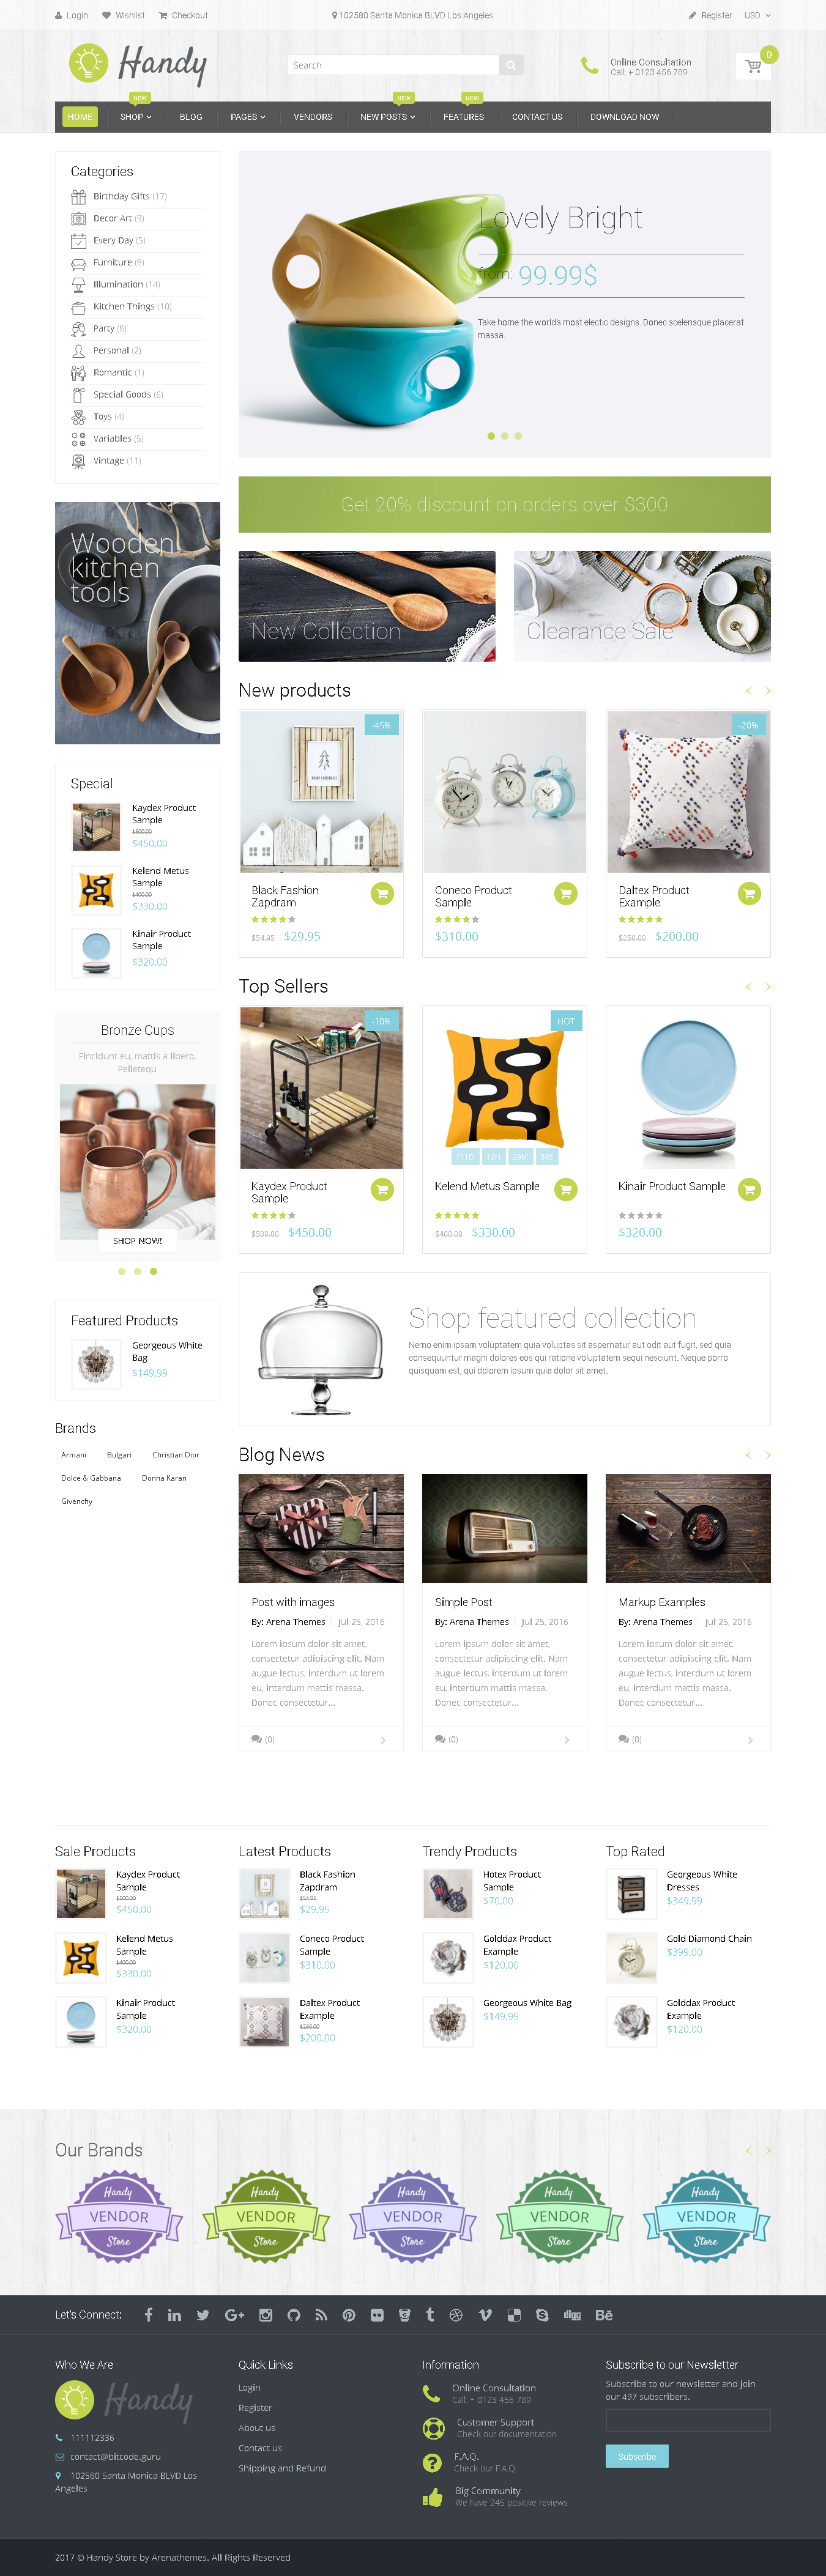 Best Shopify Theme for Art Work - Handy - Handmade Shop Shopify Theme